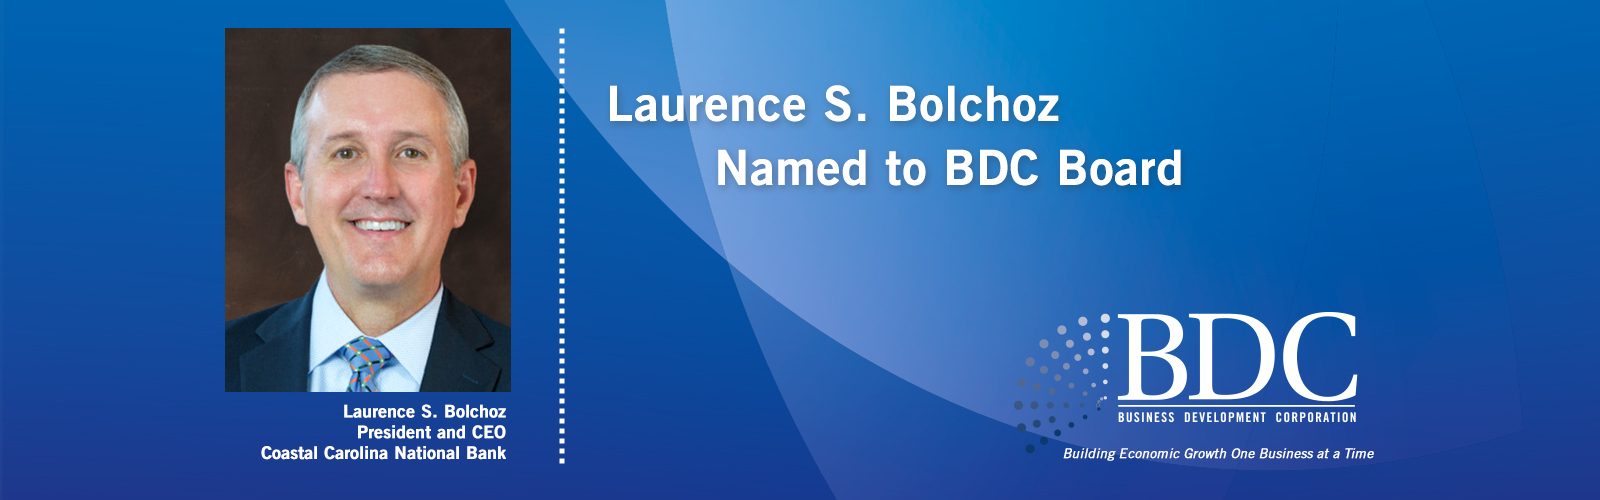 Laurence S. Bolchoz Named to BDC Board